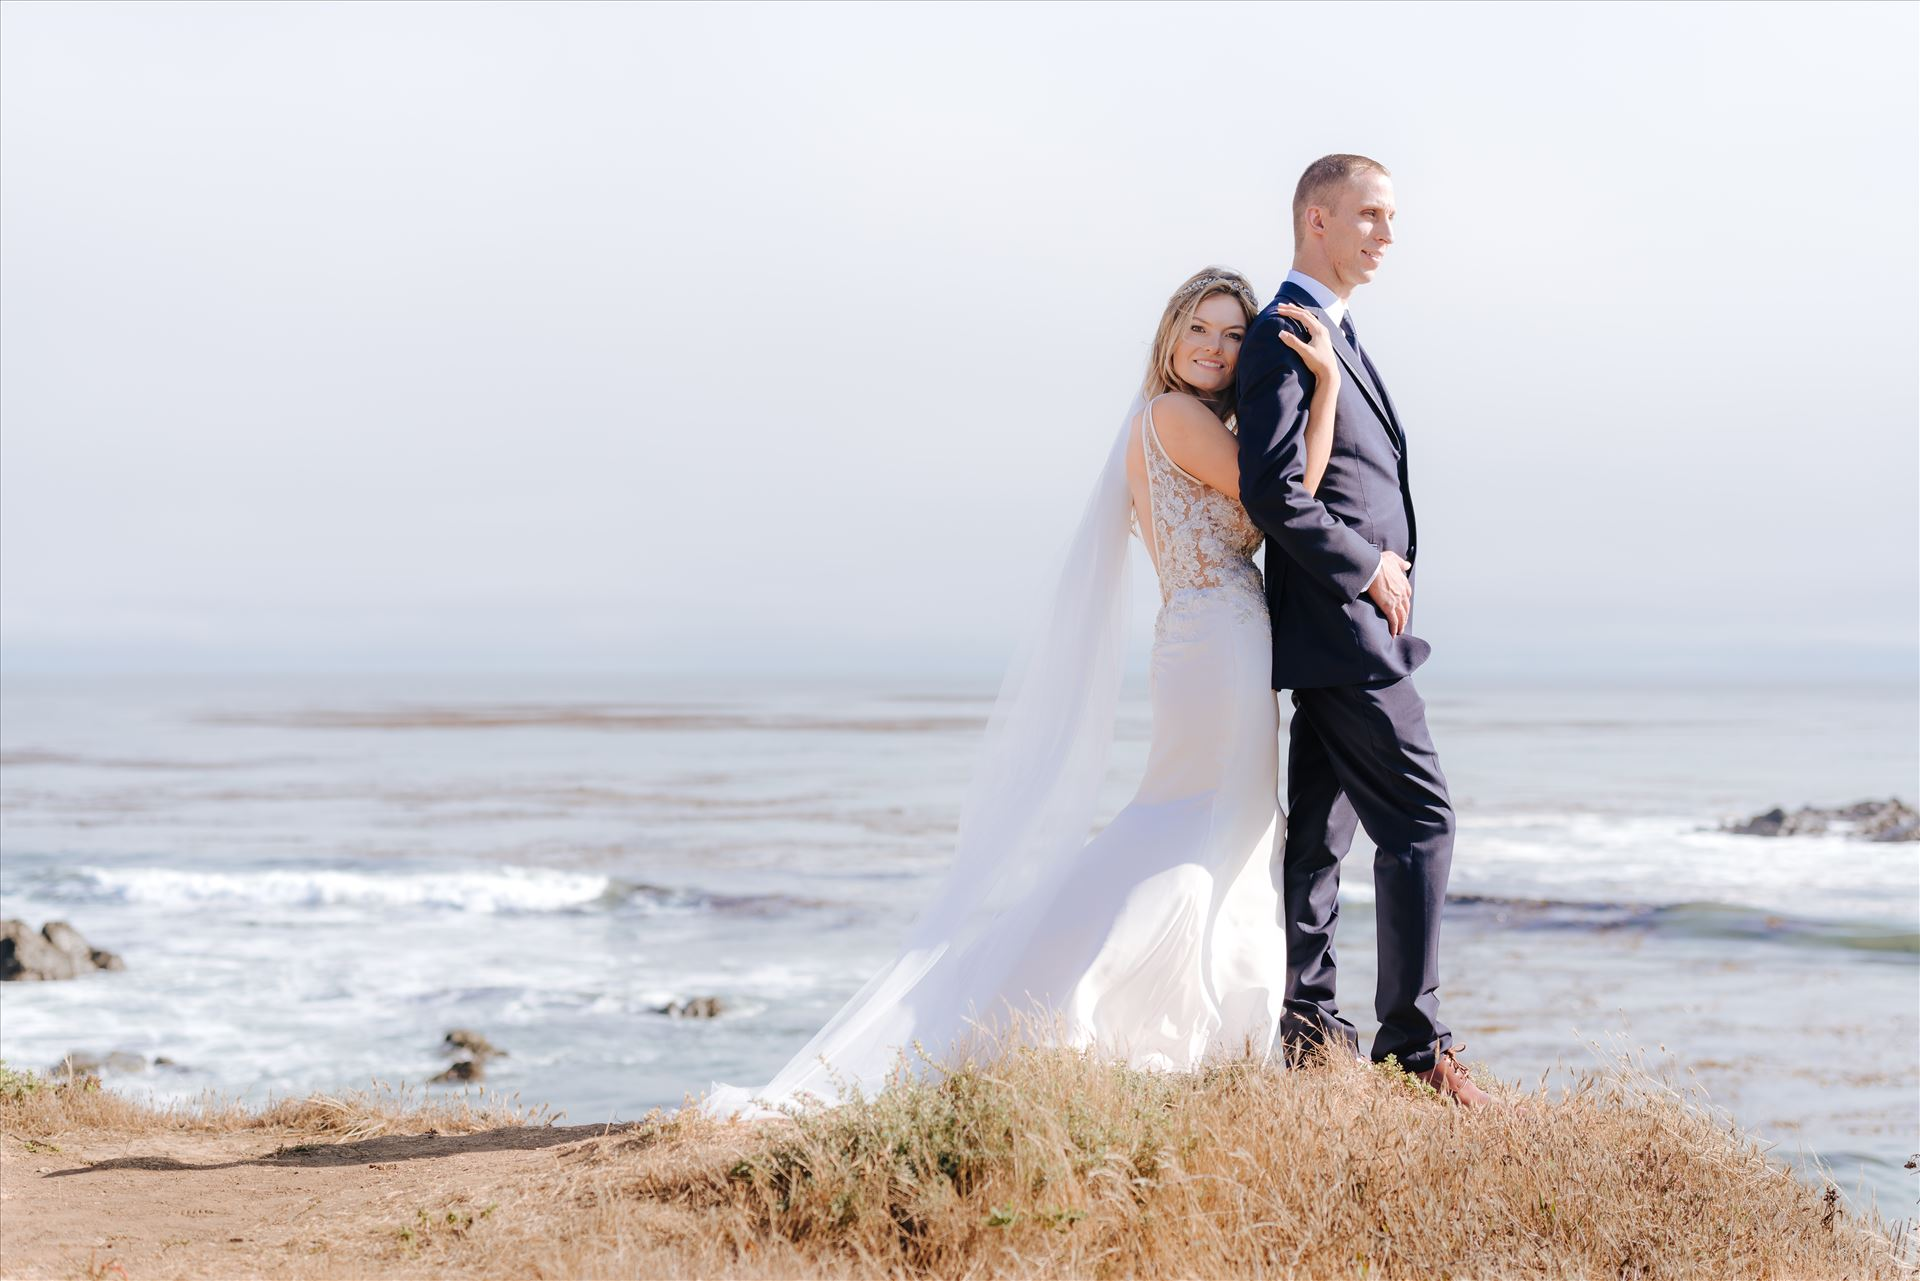 Courtney and Doug 55 Mirror's Edge Photography, San Luis Obispo Wedding Photographer captures Cayucos Wedding on the beach and bluffs in Cayucos Central California Coast. Bride and Groom overlooking the ocean by Sarah Williams